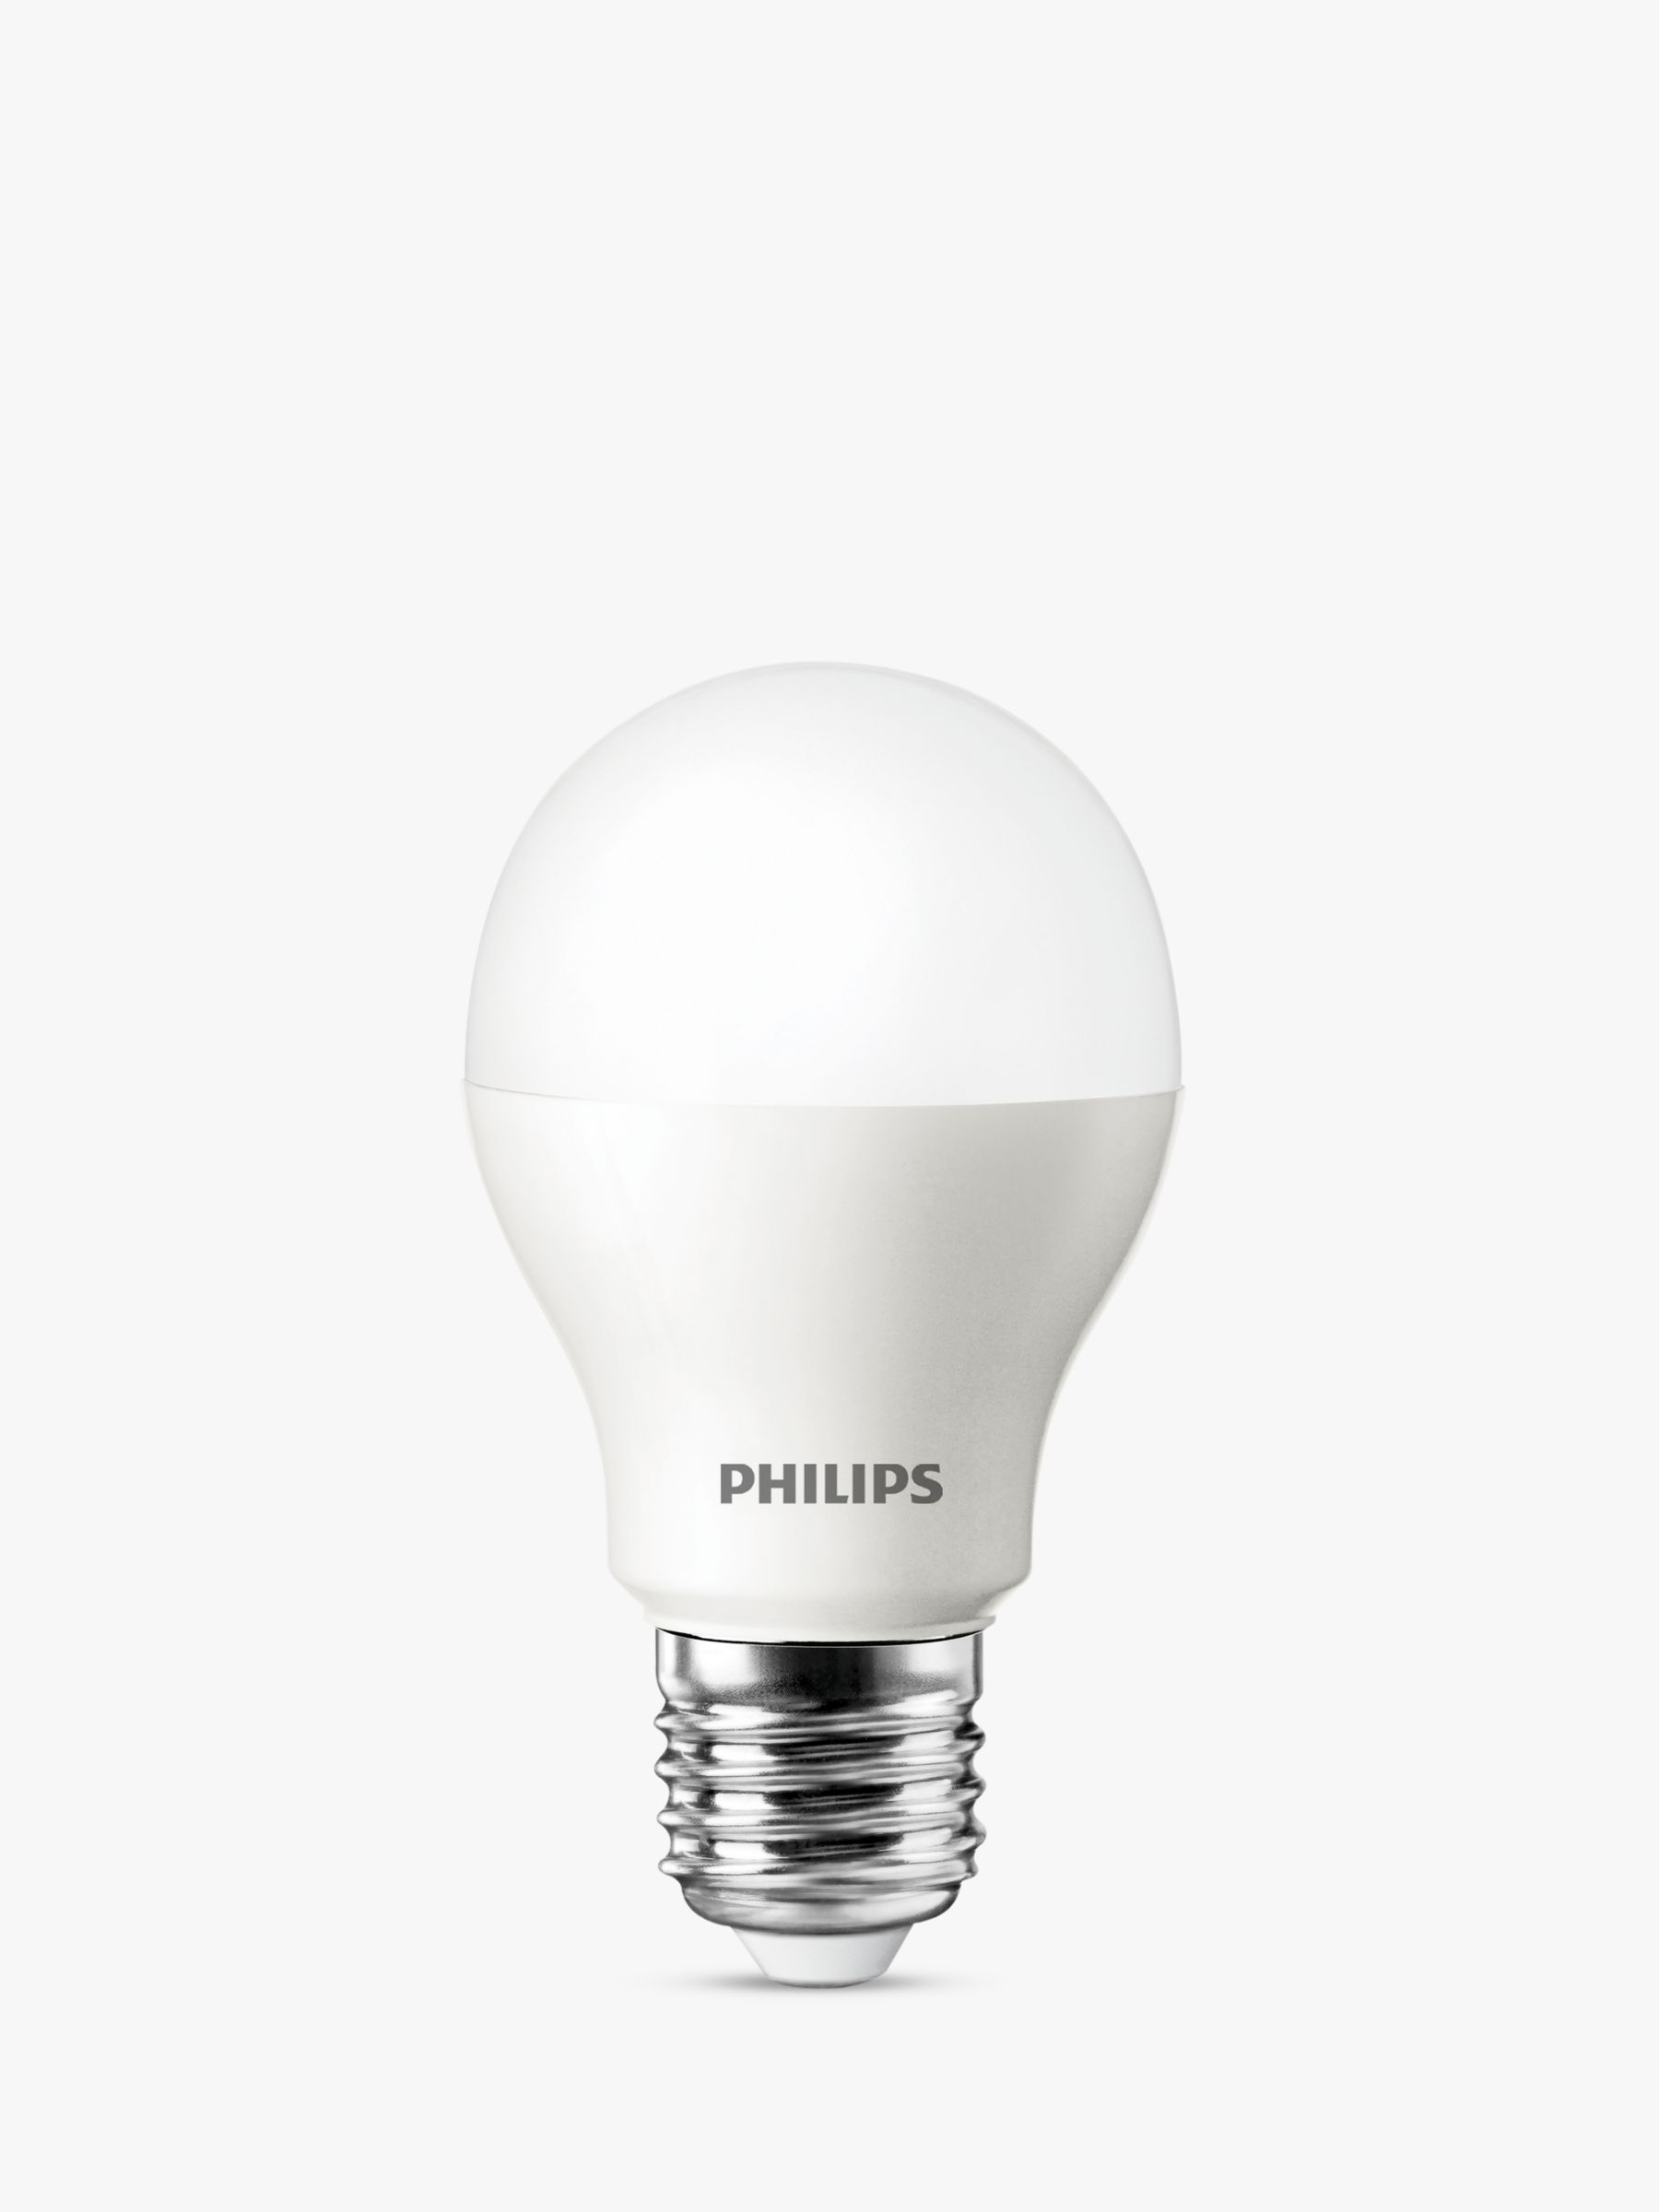 Philips Classic Led Philips 5 5w Es Classic Led Light Bulb Frosted At John Lewis